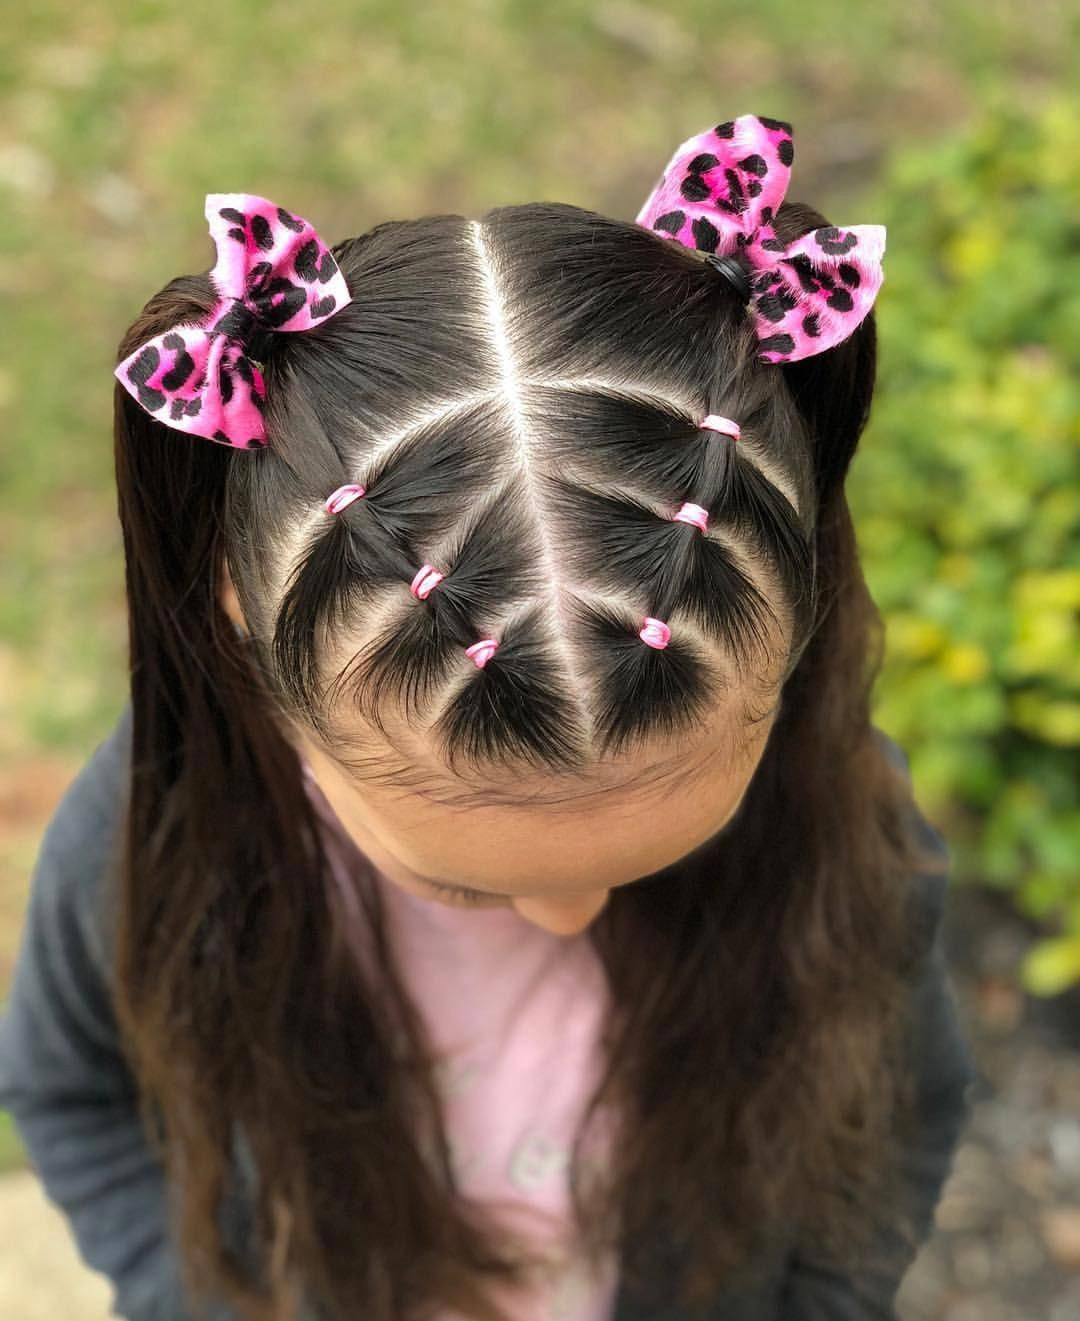 Dutch braid with elastic sections on the side into a messy bun 🎀🌸💜 • Super cute bow is from @lilieslondon 🥰 use code: CADENCE